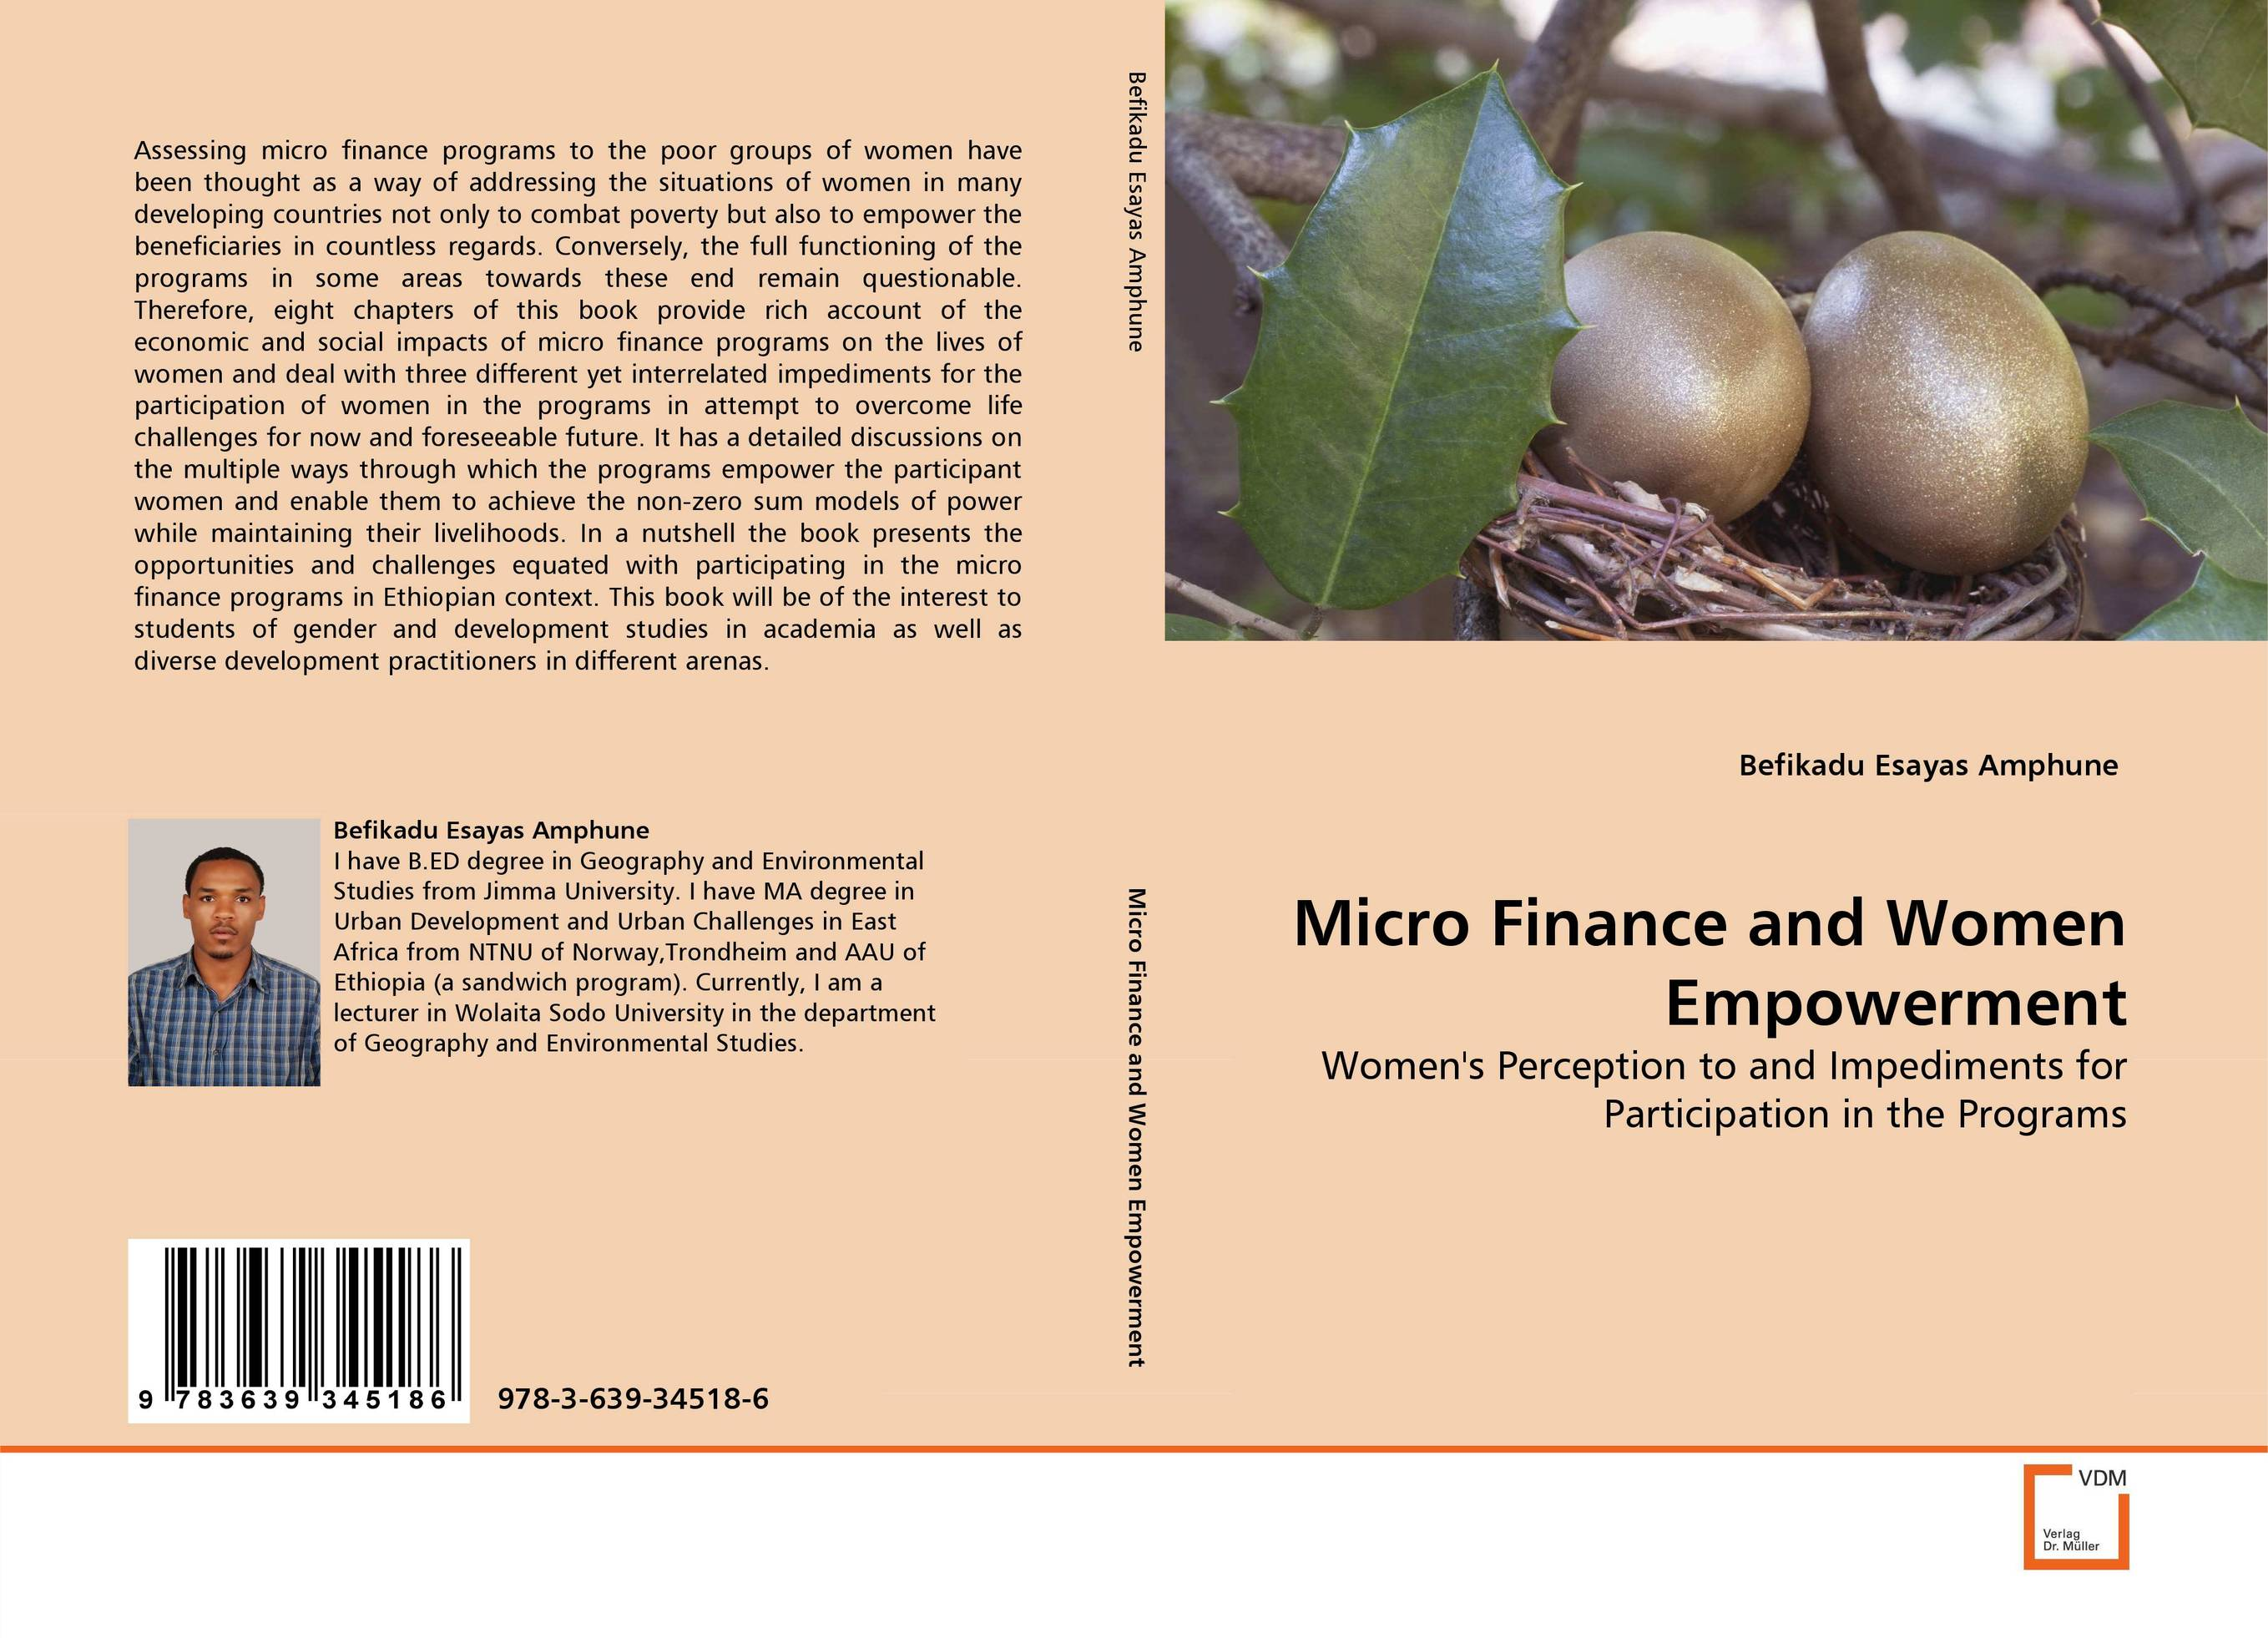 Micro Finance and Women Empowerment jaynal ud din ahmed and mohd abdul rashid institutional finance for micro and small entreprises in india